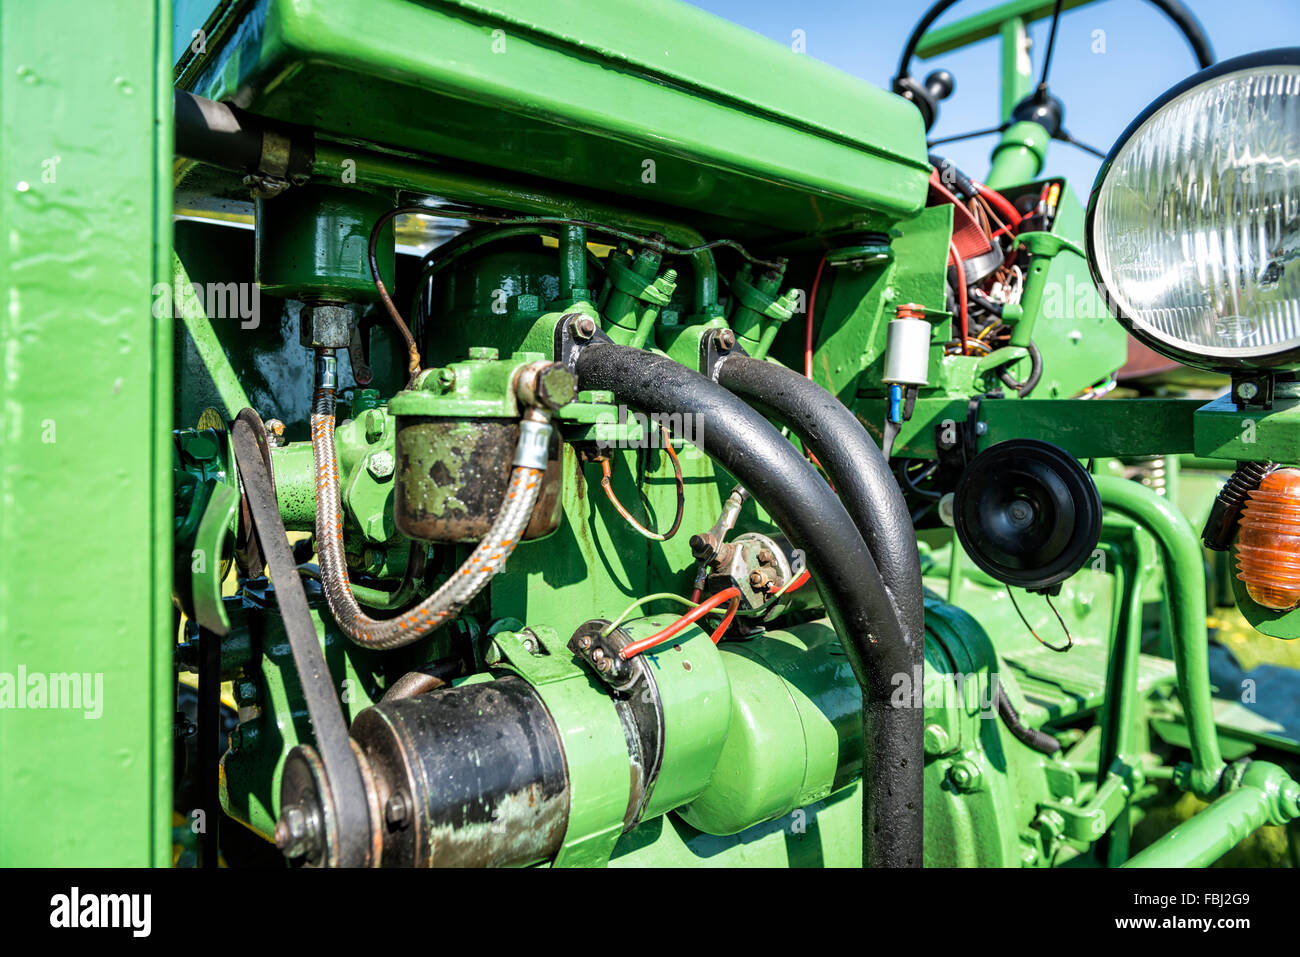 Tractor, Bautz AS 120, year of manufacture 1954, total weight 1600, cubic capacity 1249 cubic centimetres, 2 cylinders, Stock Photo